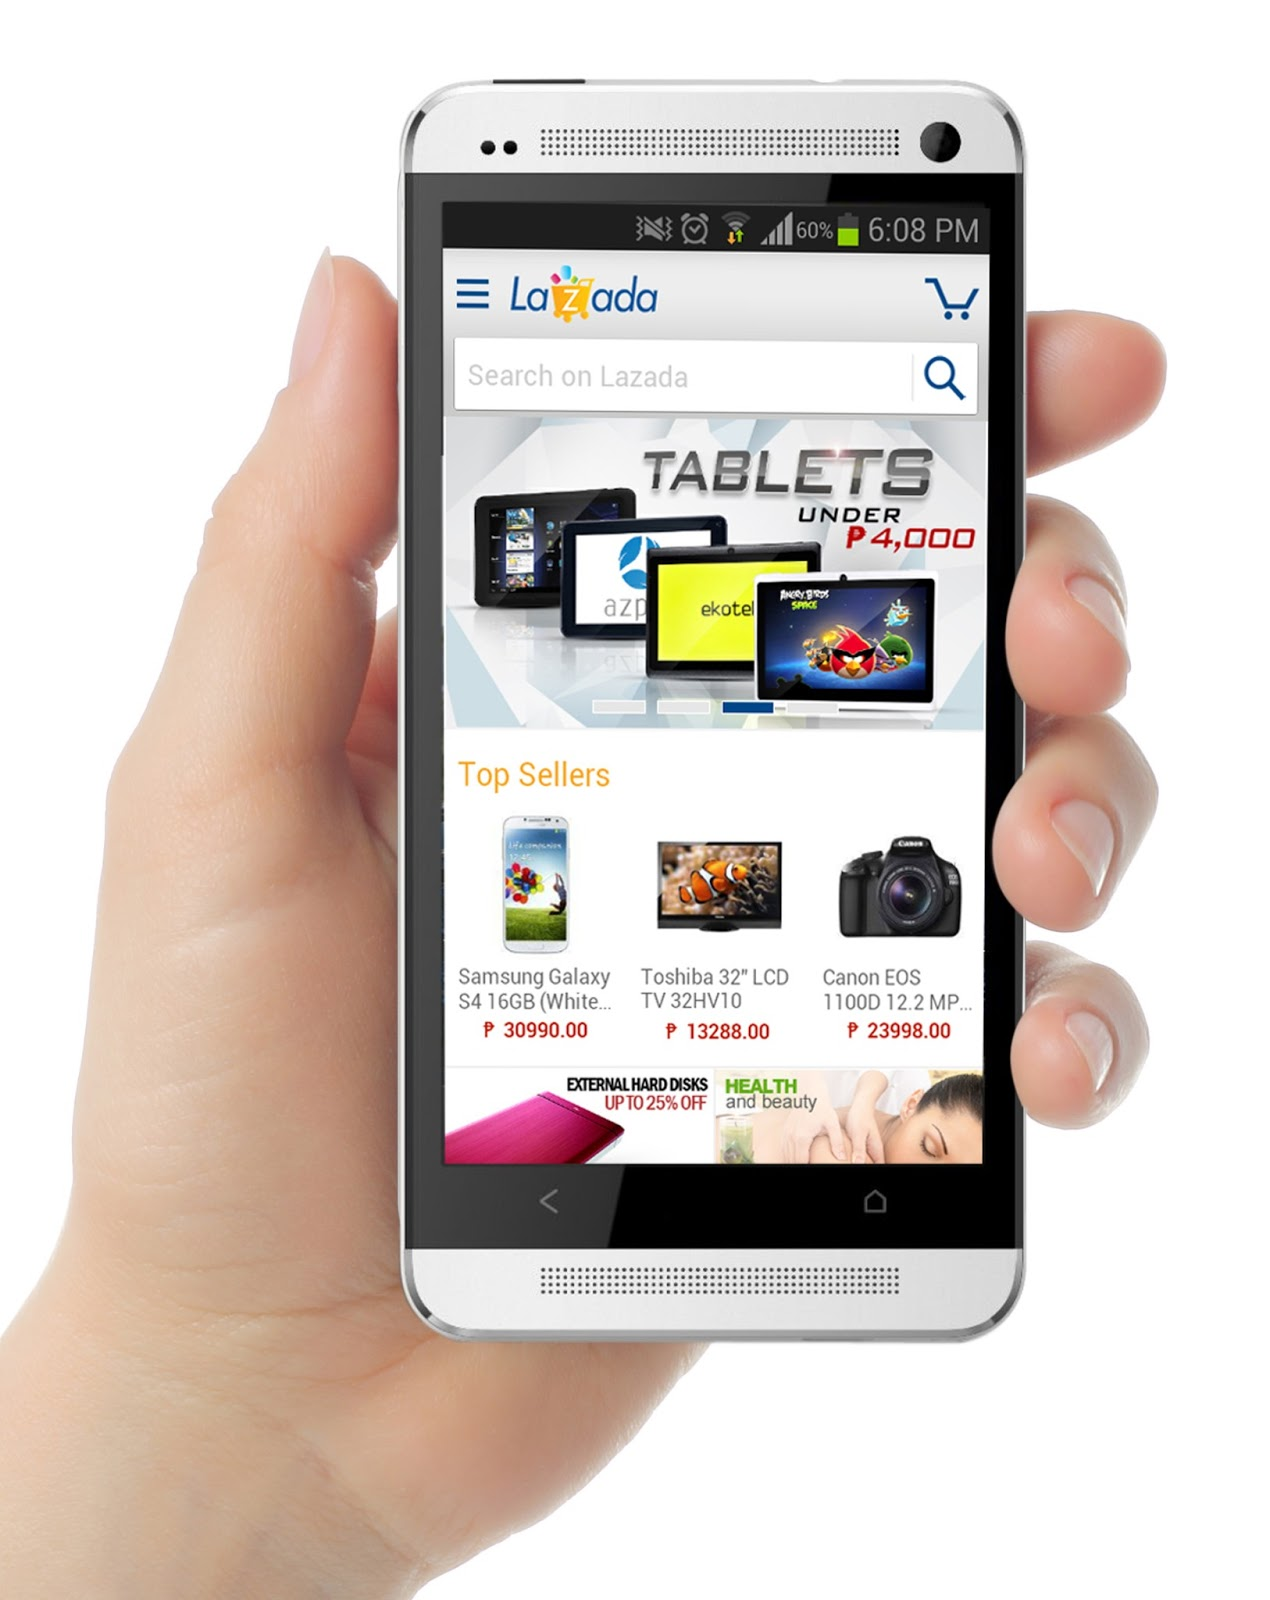 Lazada Launches New Mobile Shopping App for Android